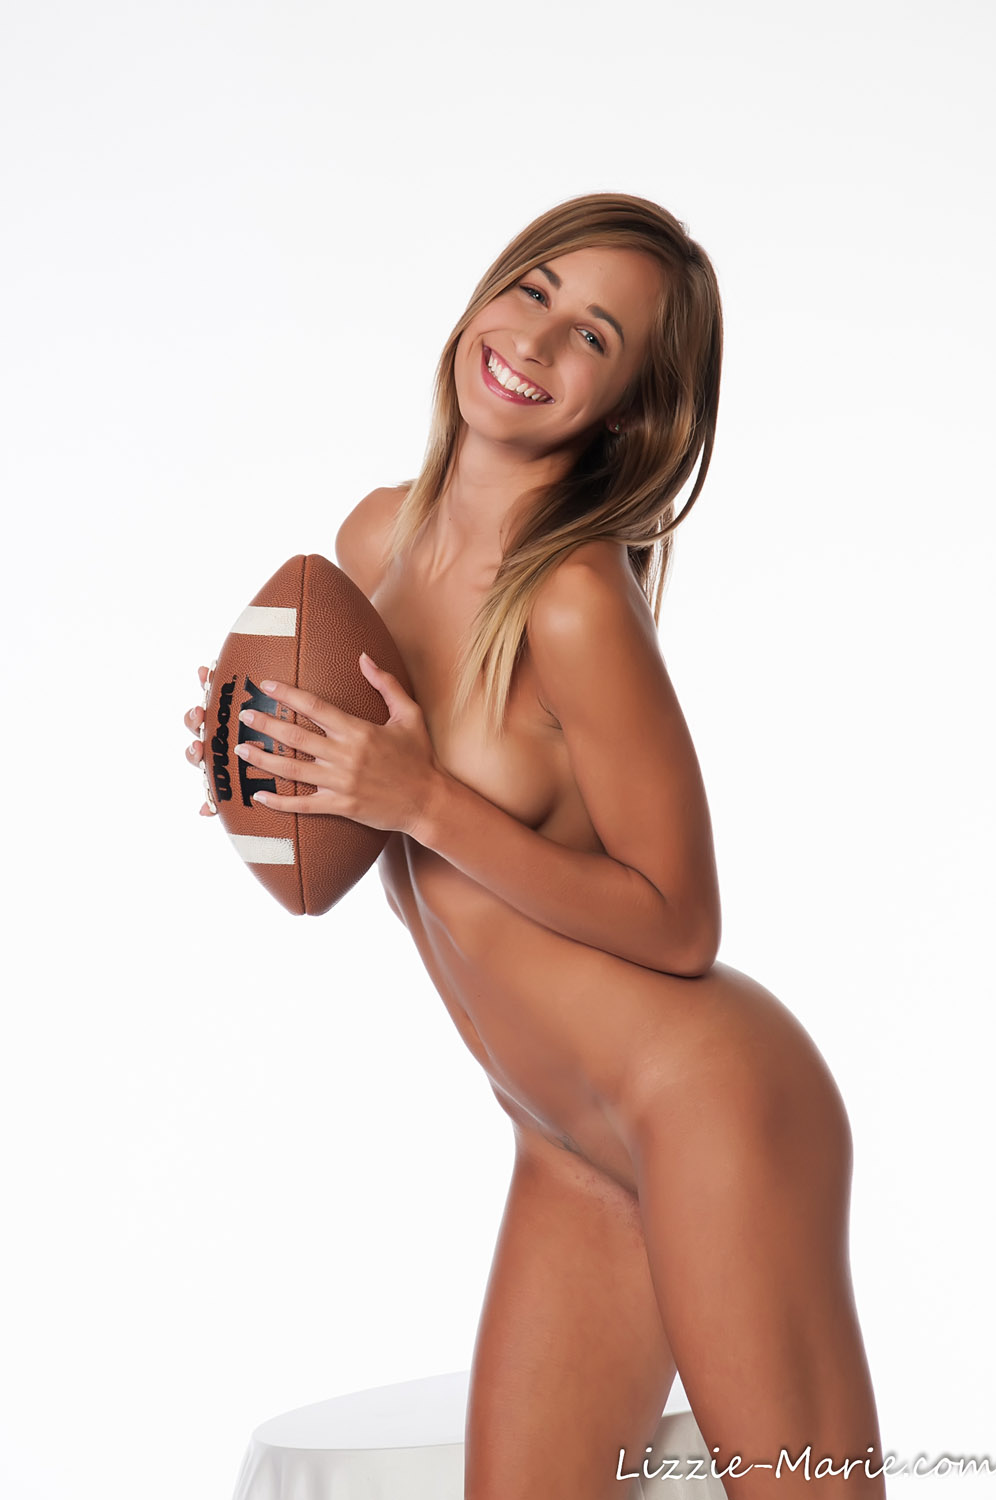 Stipped cheerleaders naked Women to cowboy